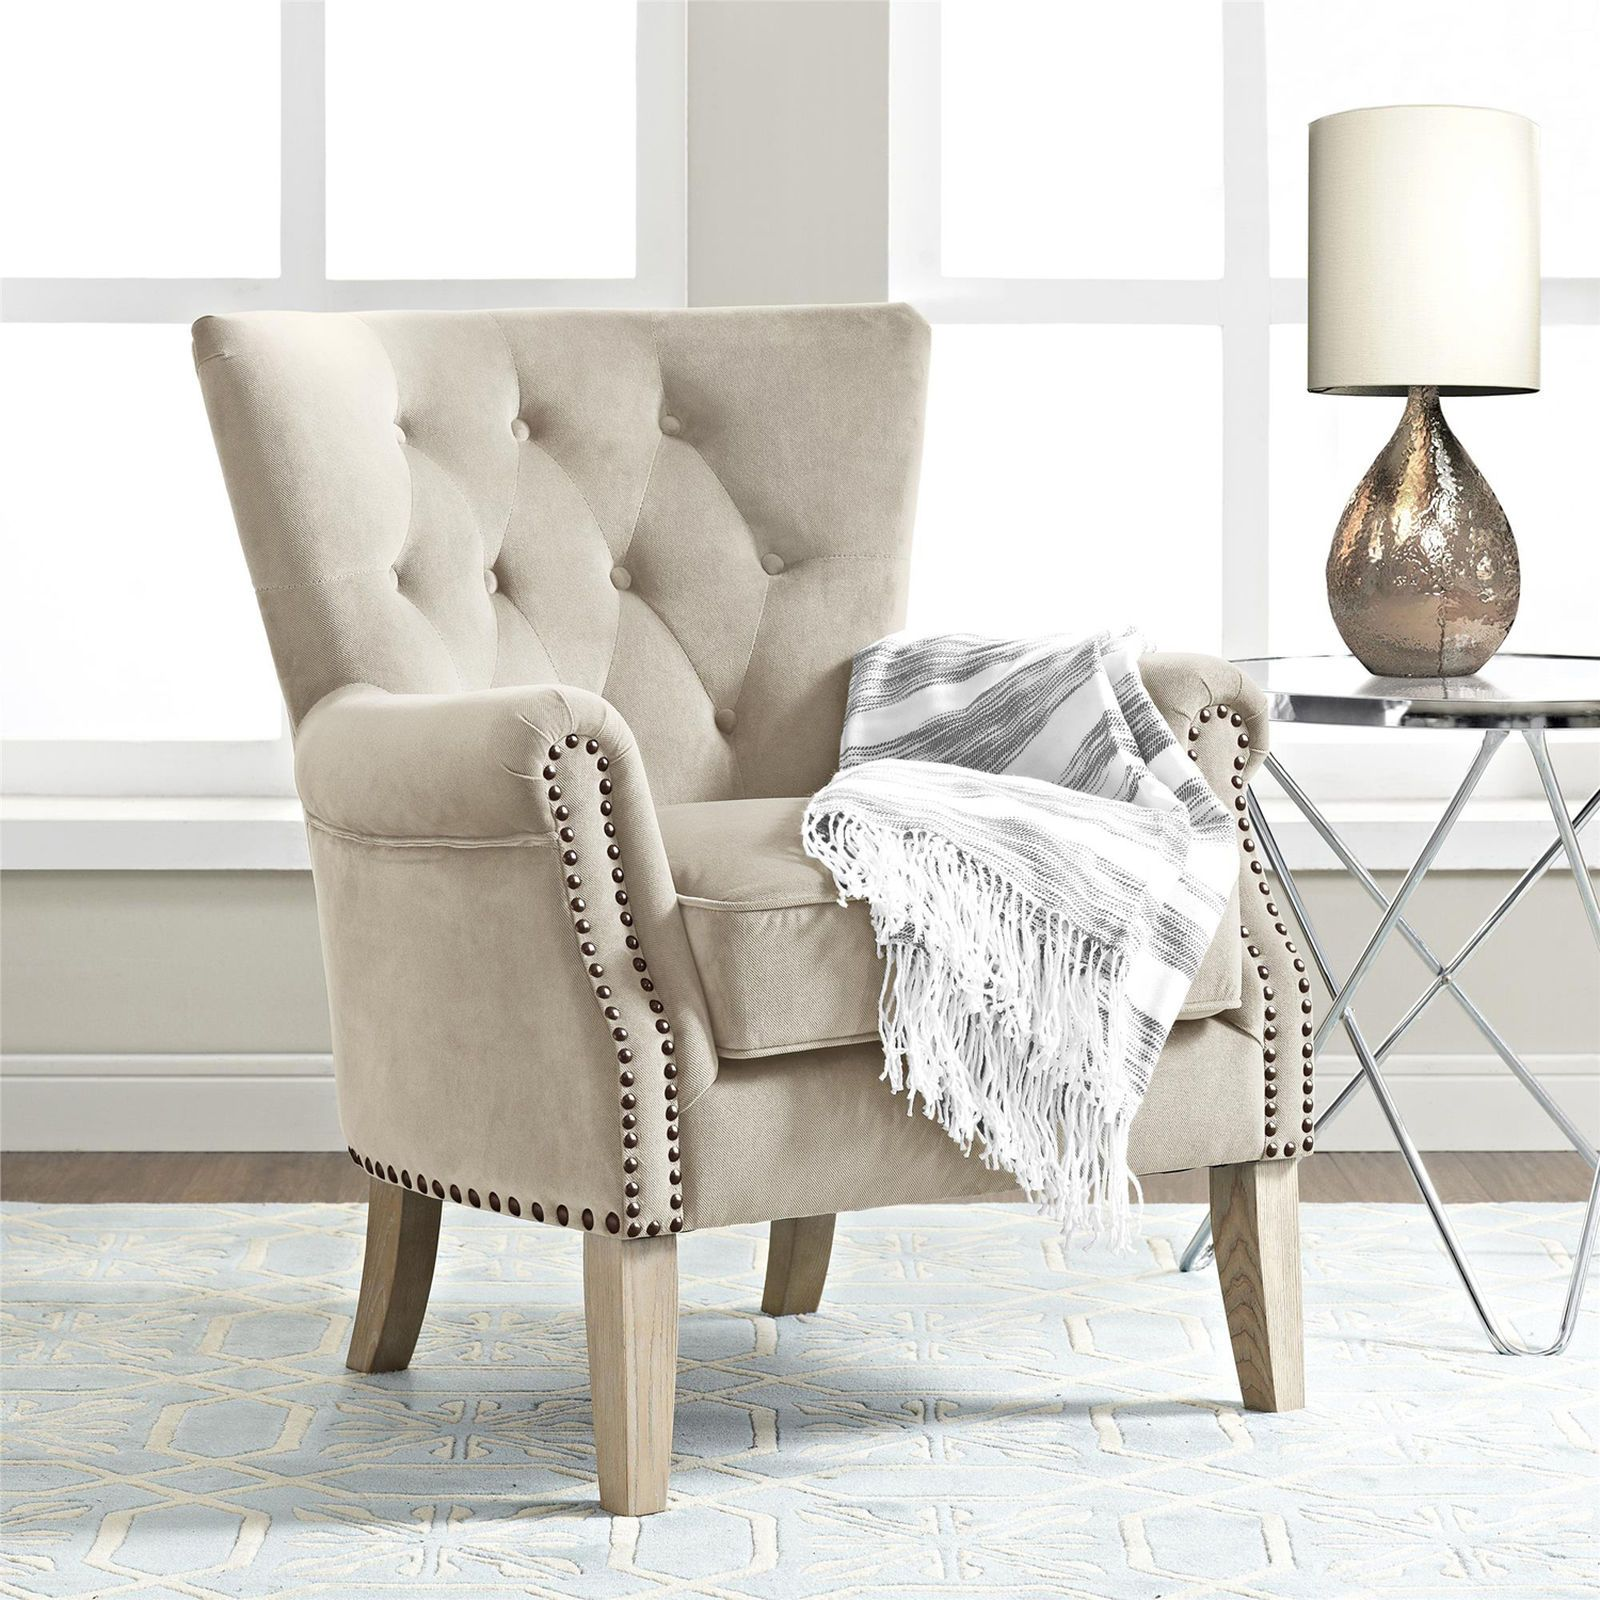 Tufted Beige Chair - Pier 1 Imports